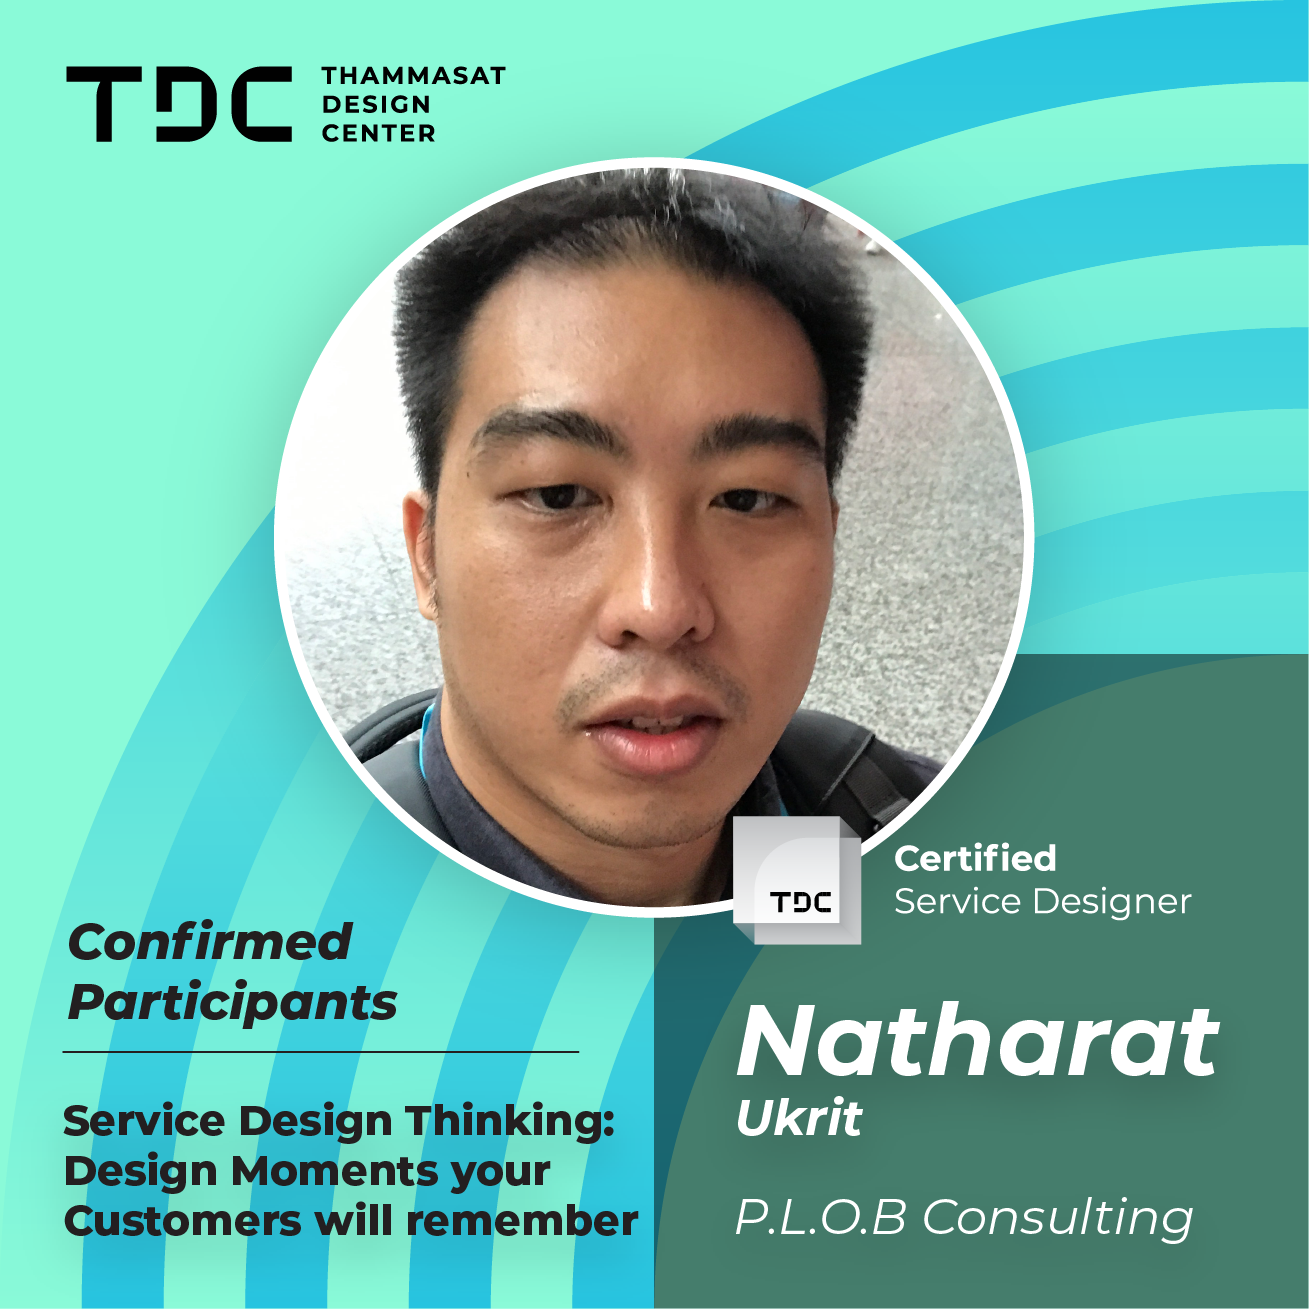 TDC Service Design [1] - Confirmed Participants-07